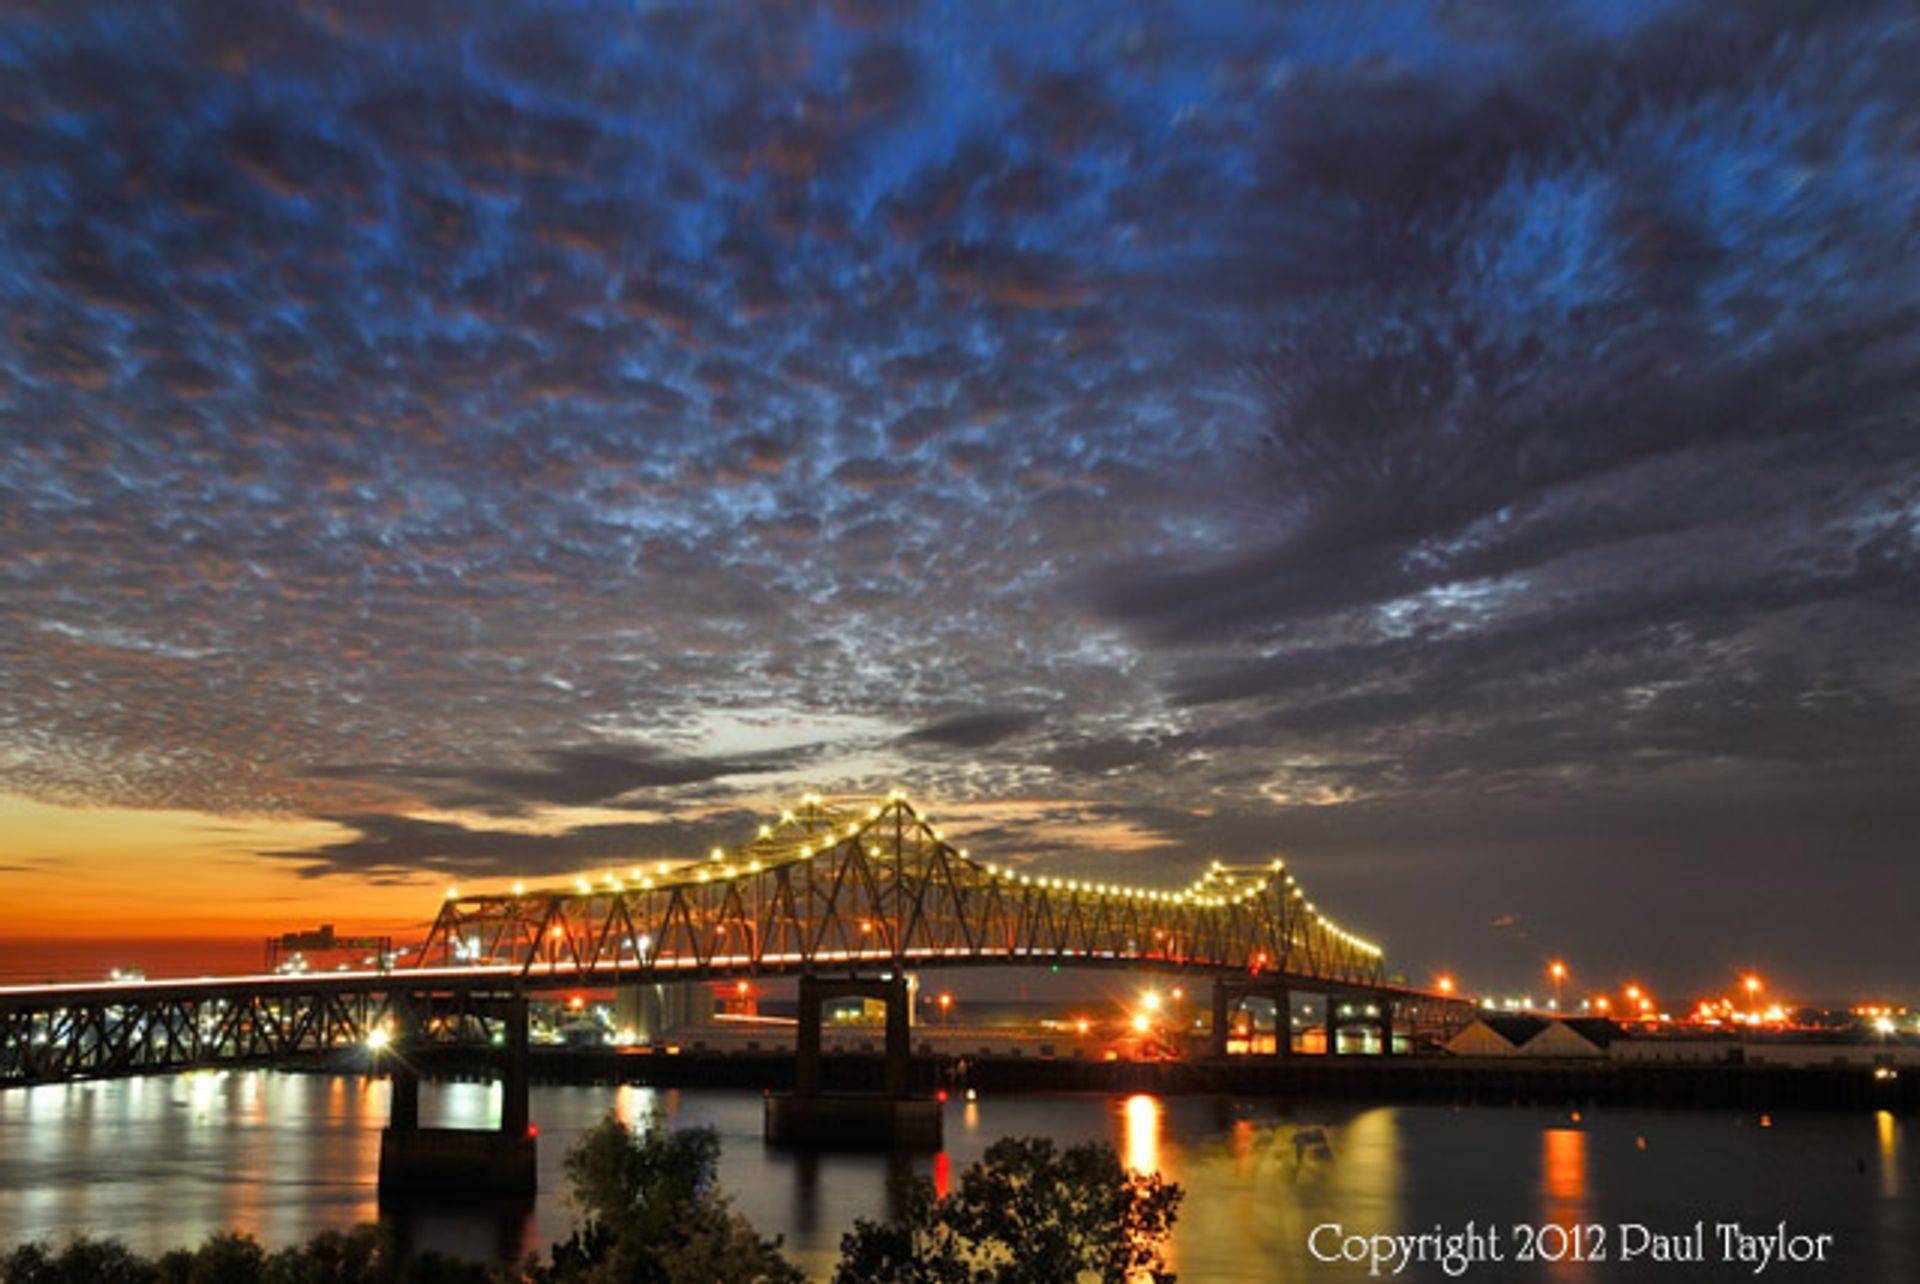 Horace Wilkinson Bridge over the Mississippi River, dusk with clouds